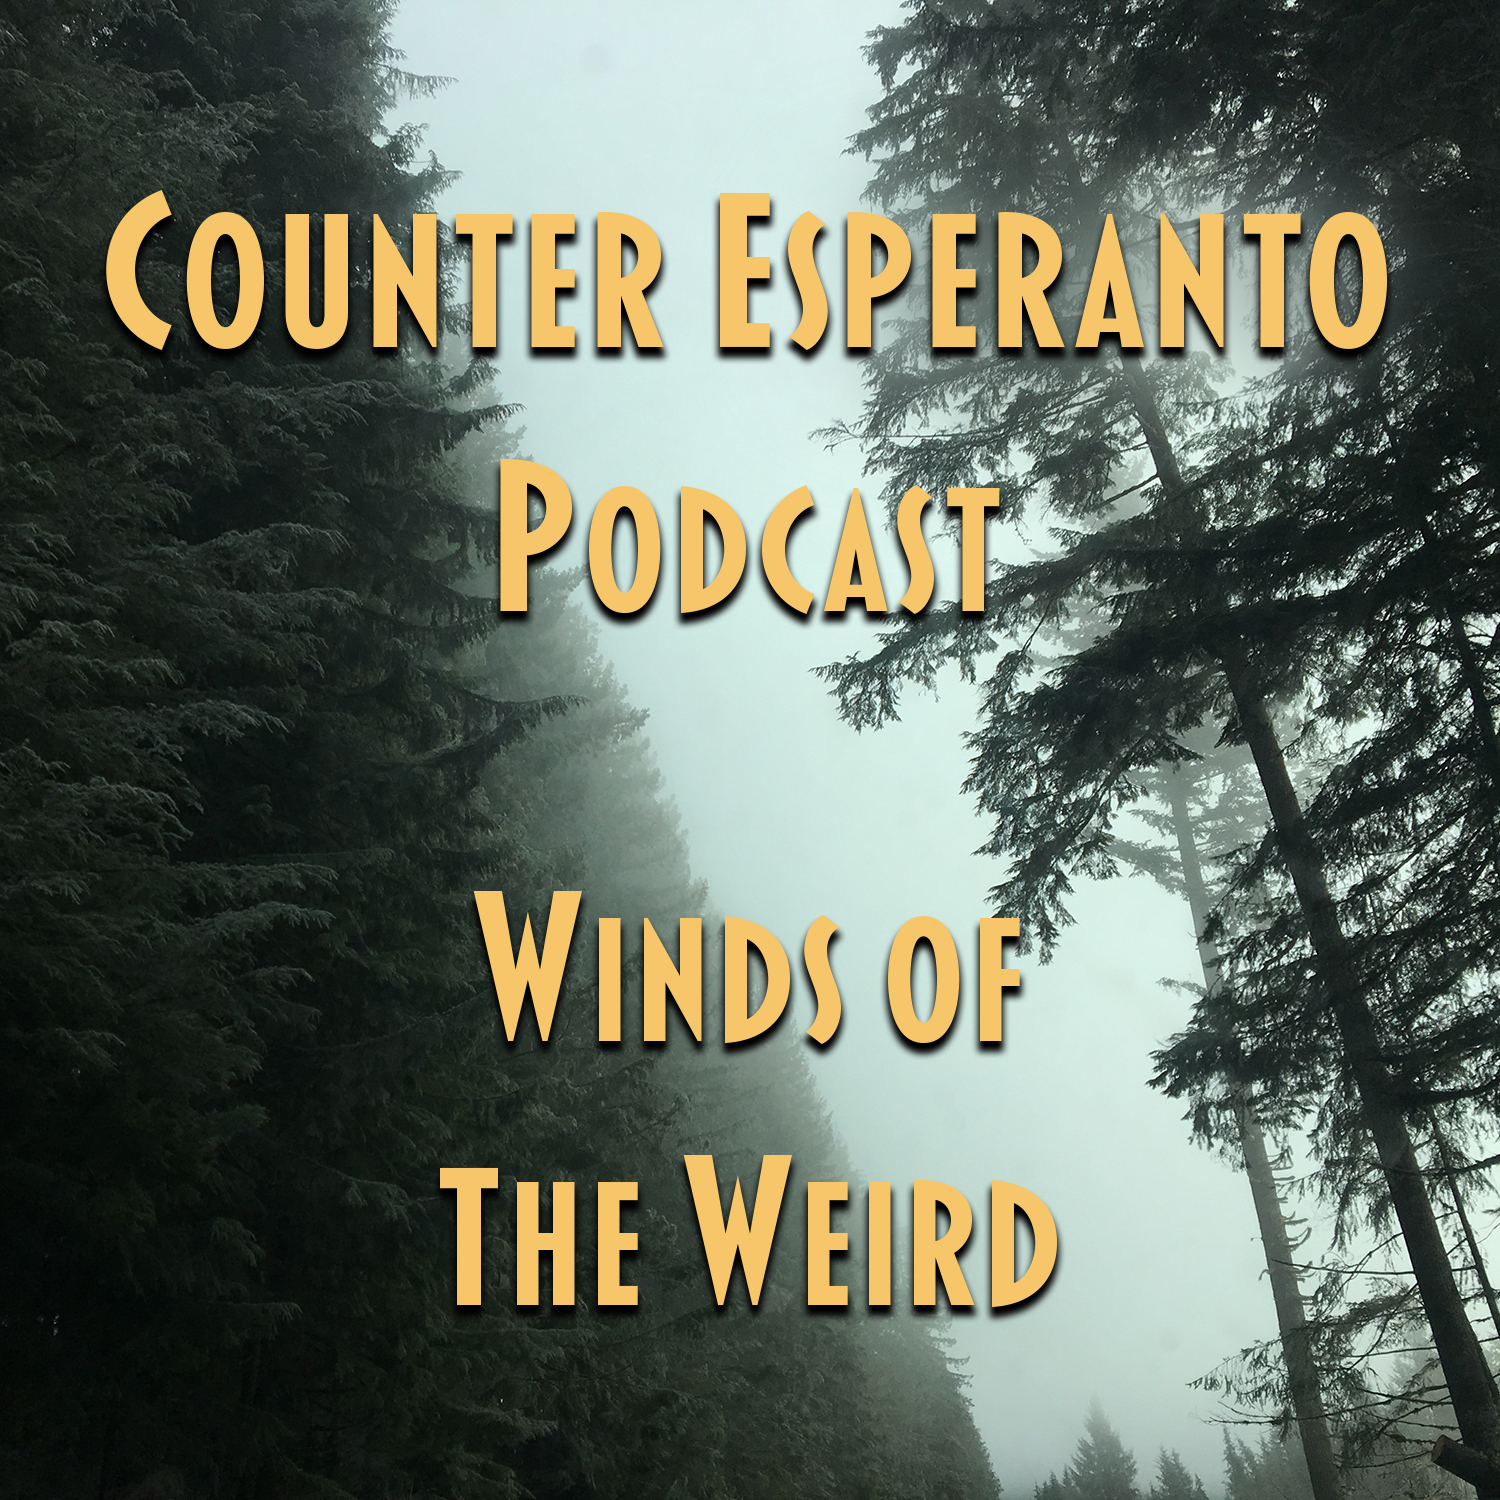 Counter Esperanto Podcast: Winds Of The Weird